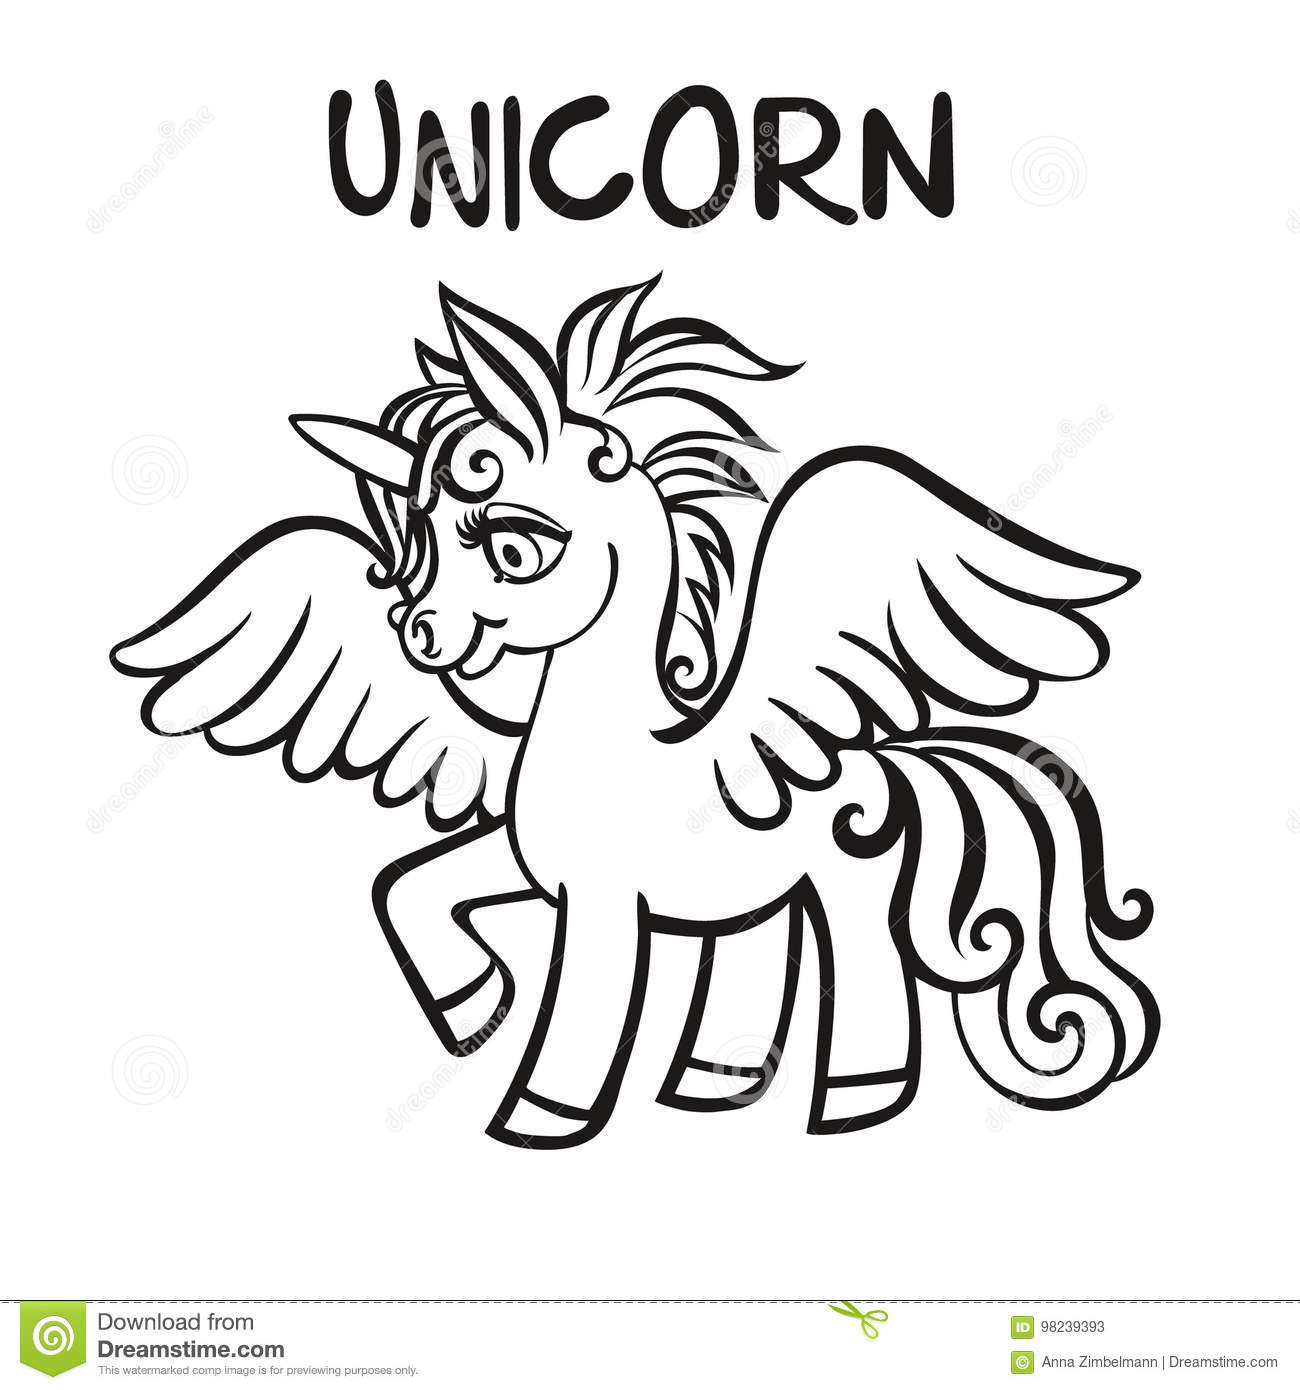 Unicorn Vector Artwork Coloring Book Pages For Adults And Kids